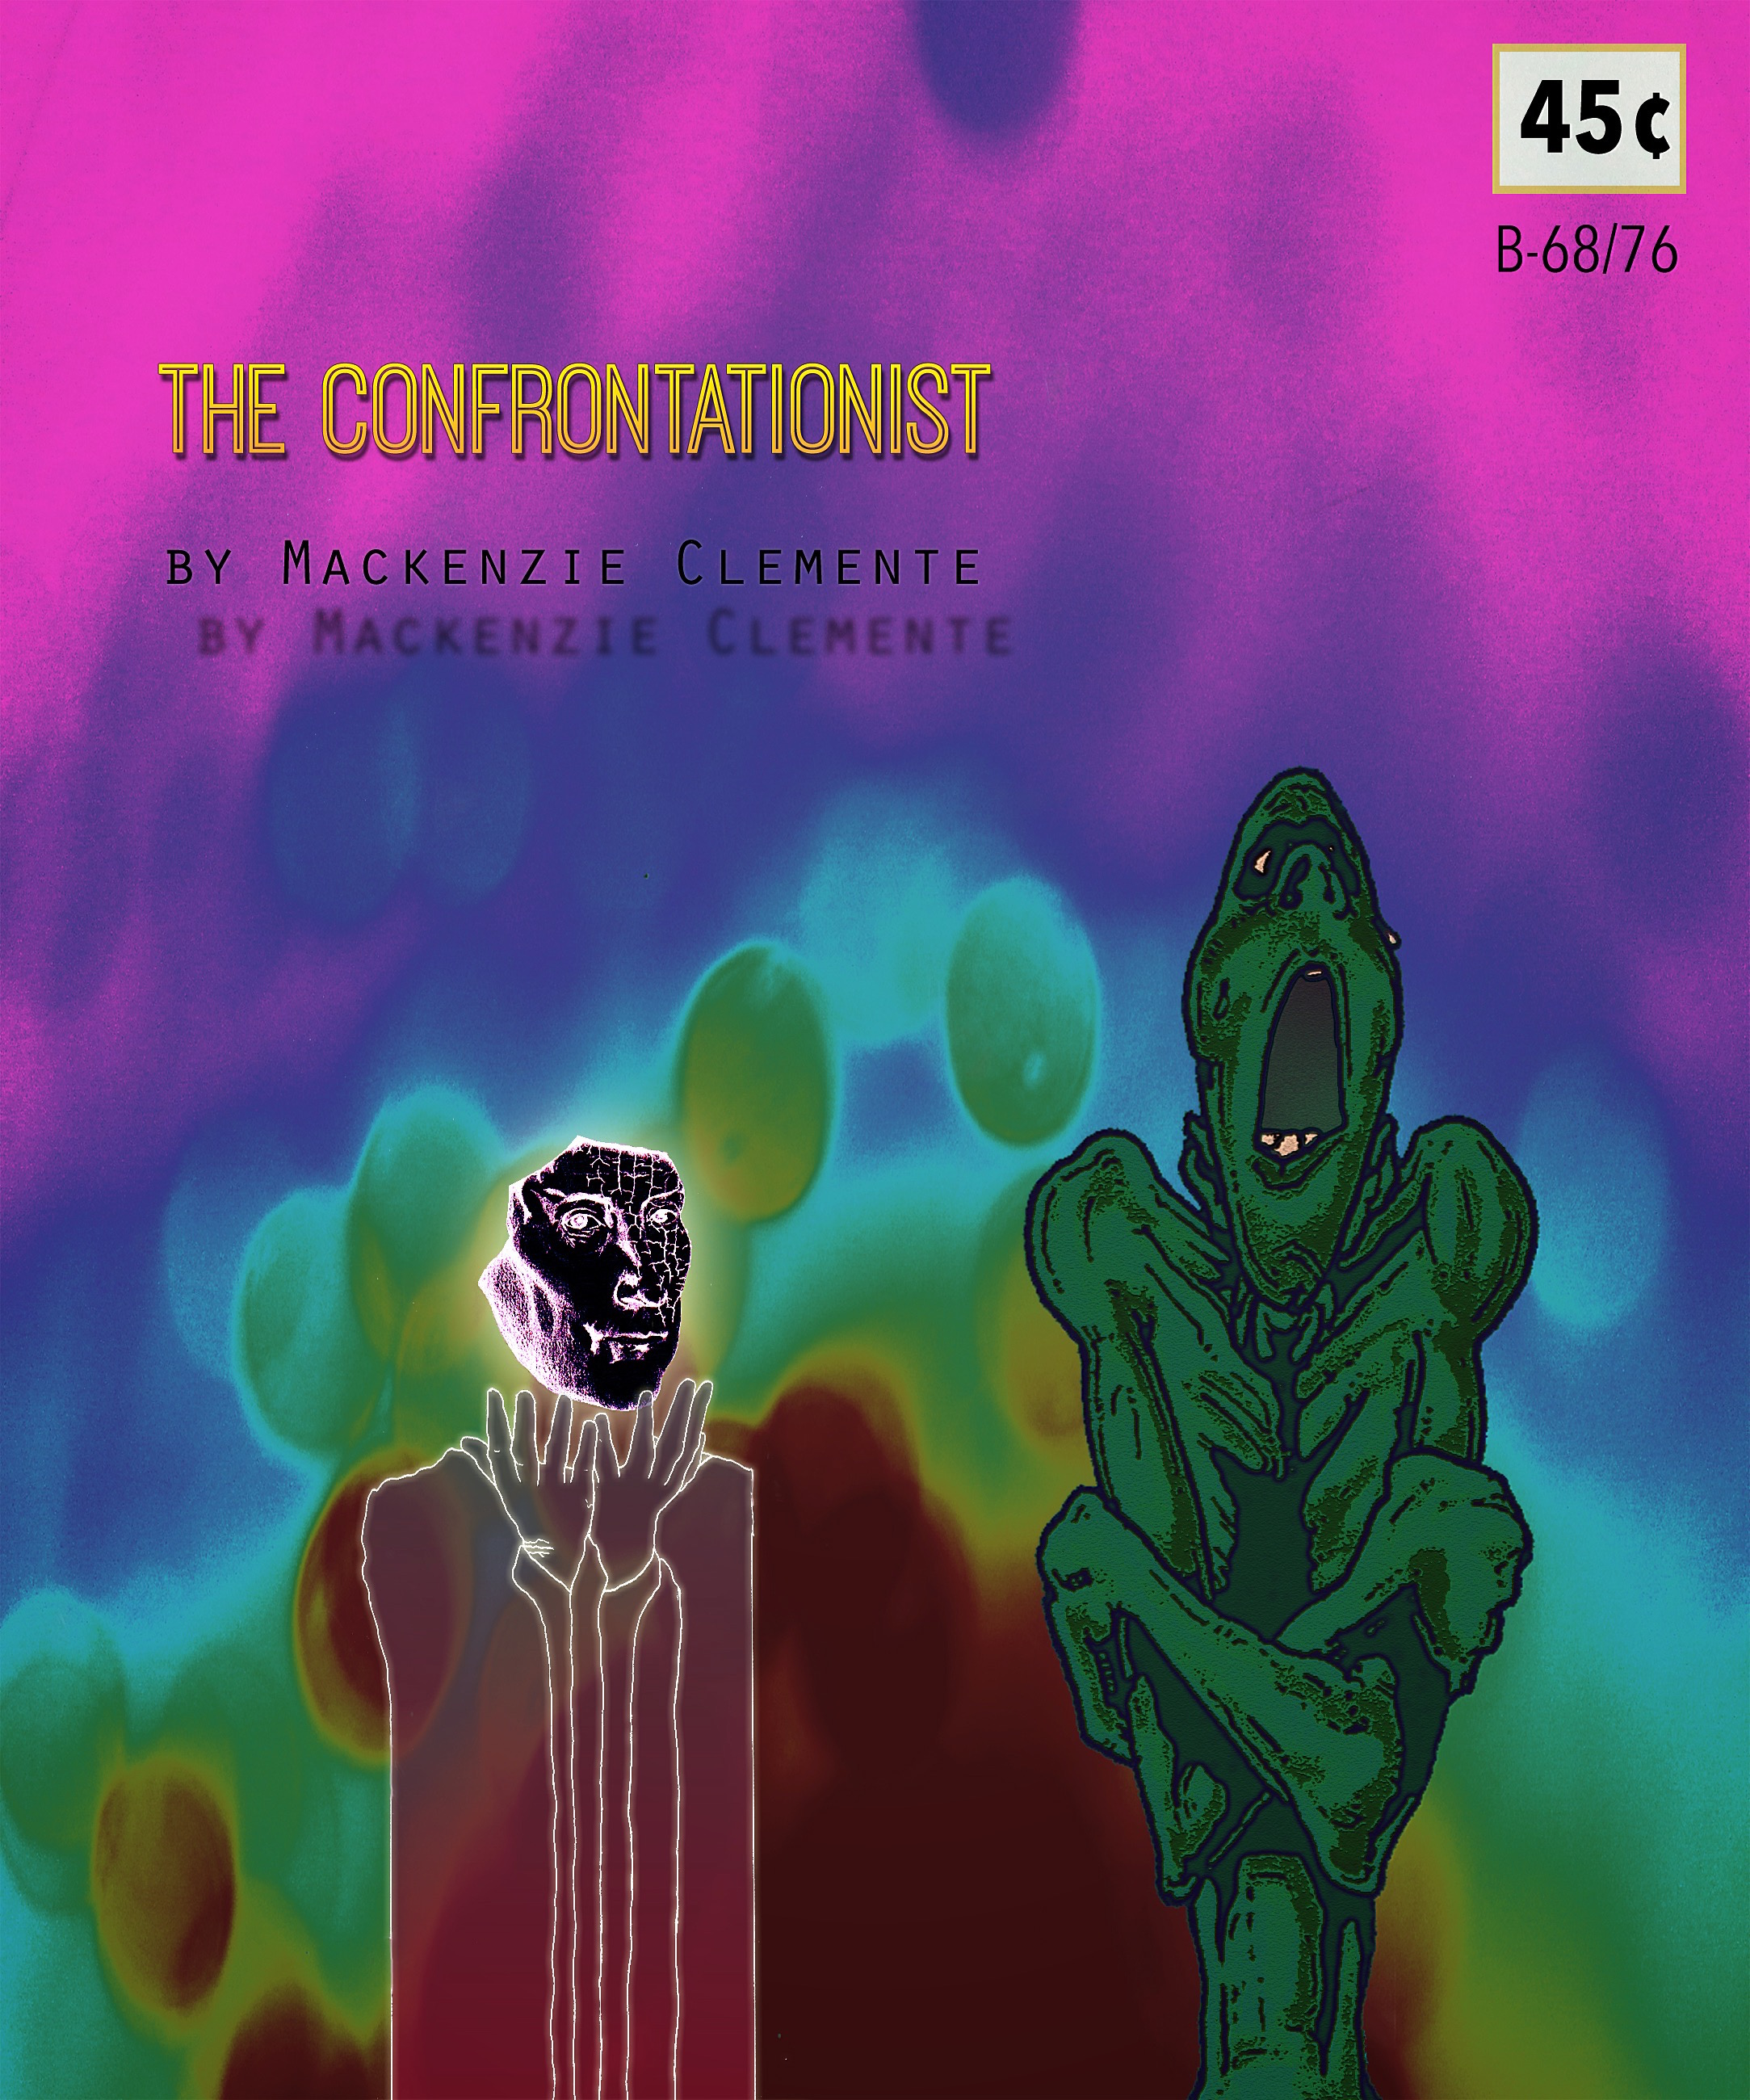 The Confrontationist